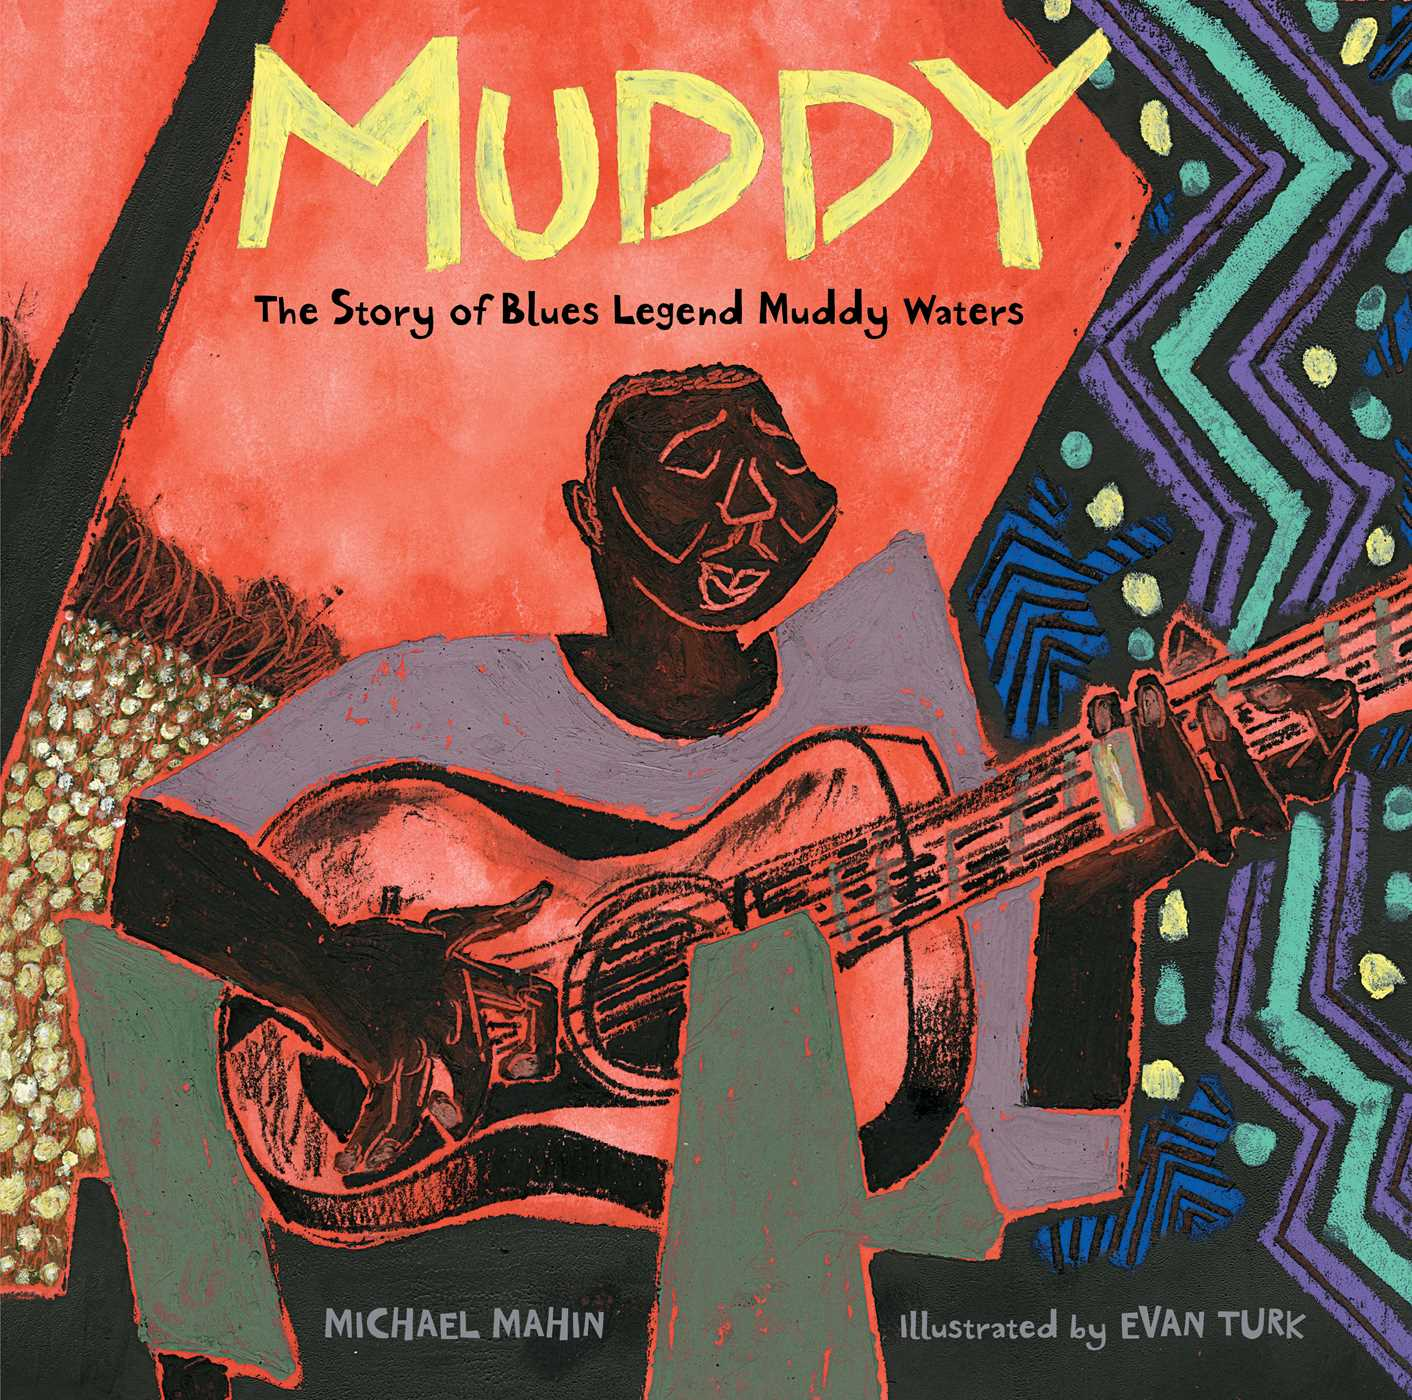 Muddy cover image